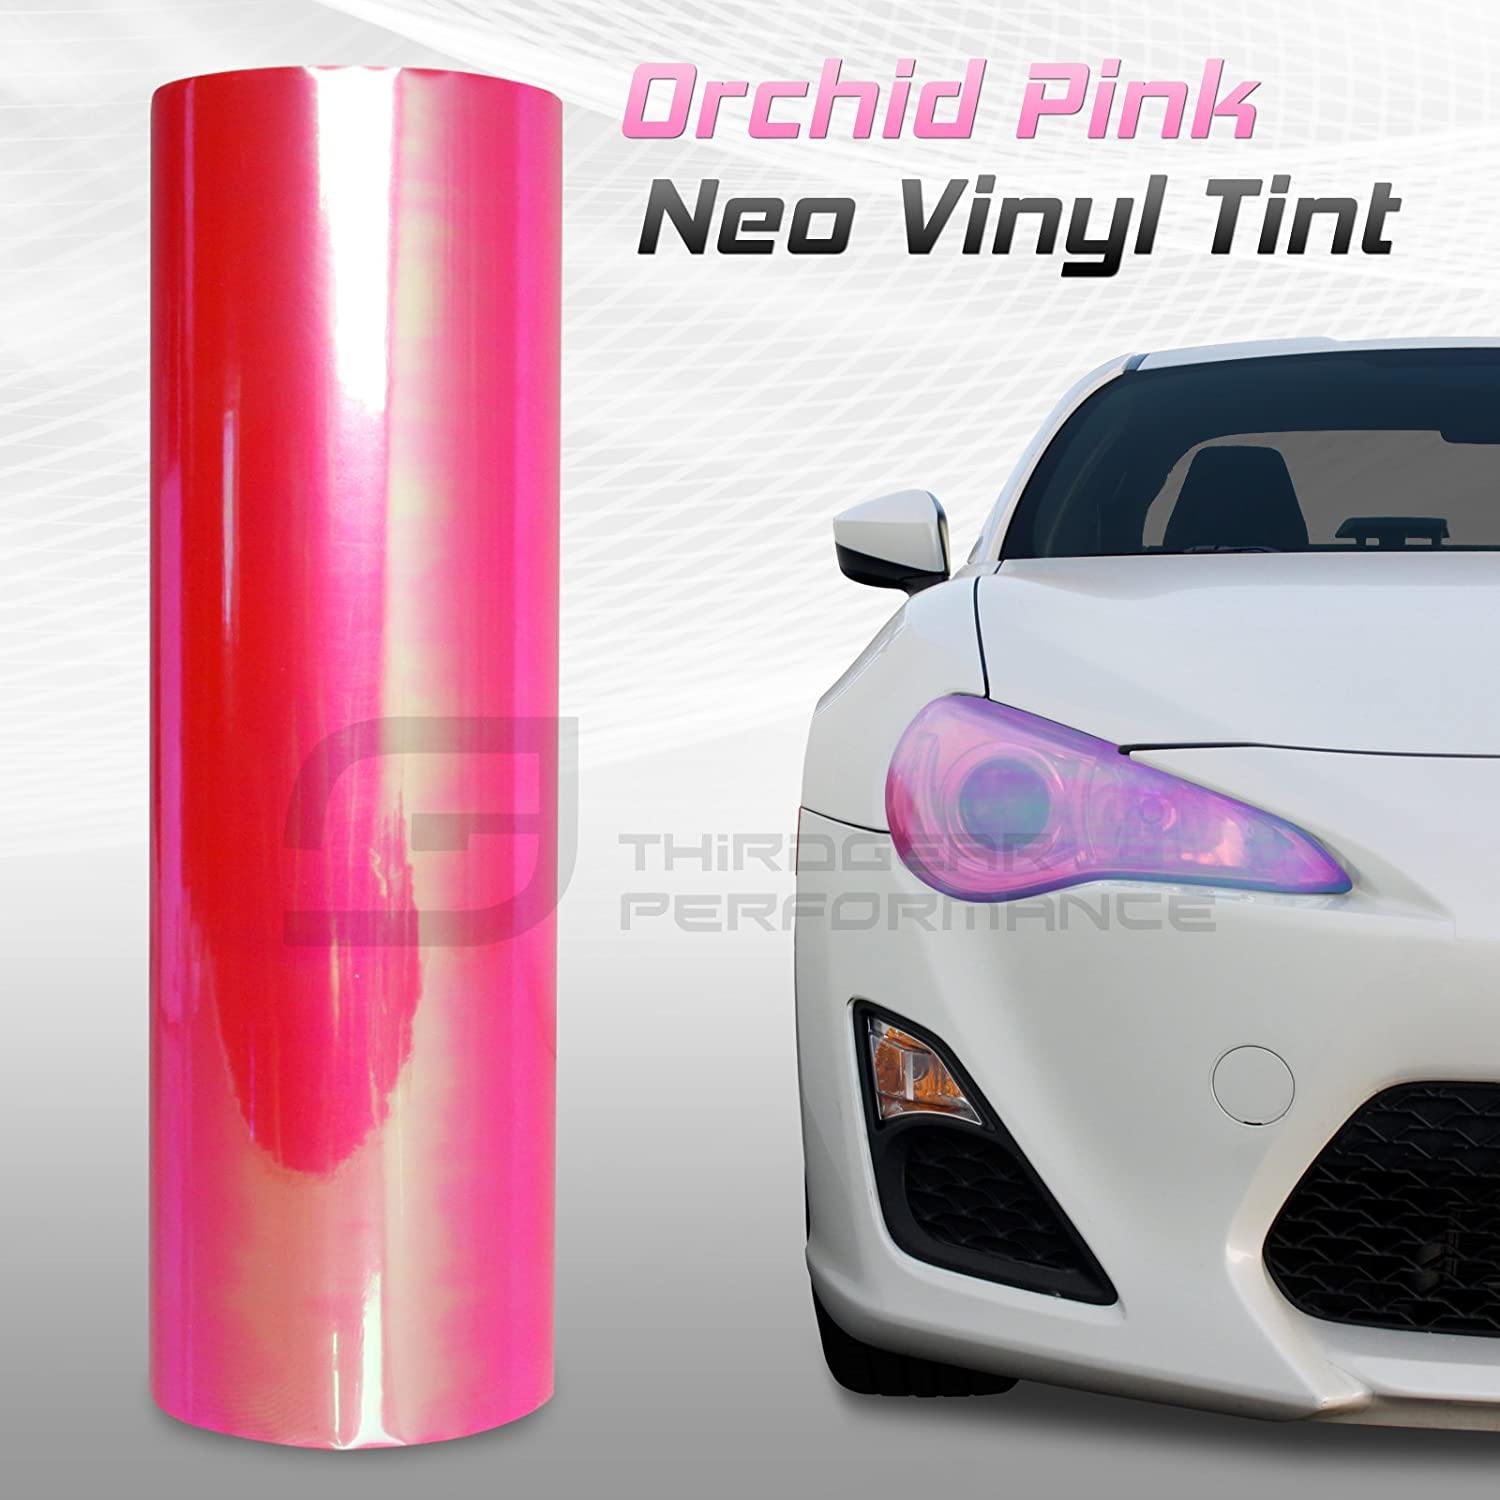 Optix Chameleon Neo Chrome Headlight Fog Light Taillight Vinyl Tint Film 12x24 in 1x2 Ft Dark Blue